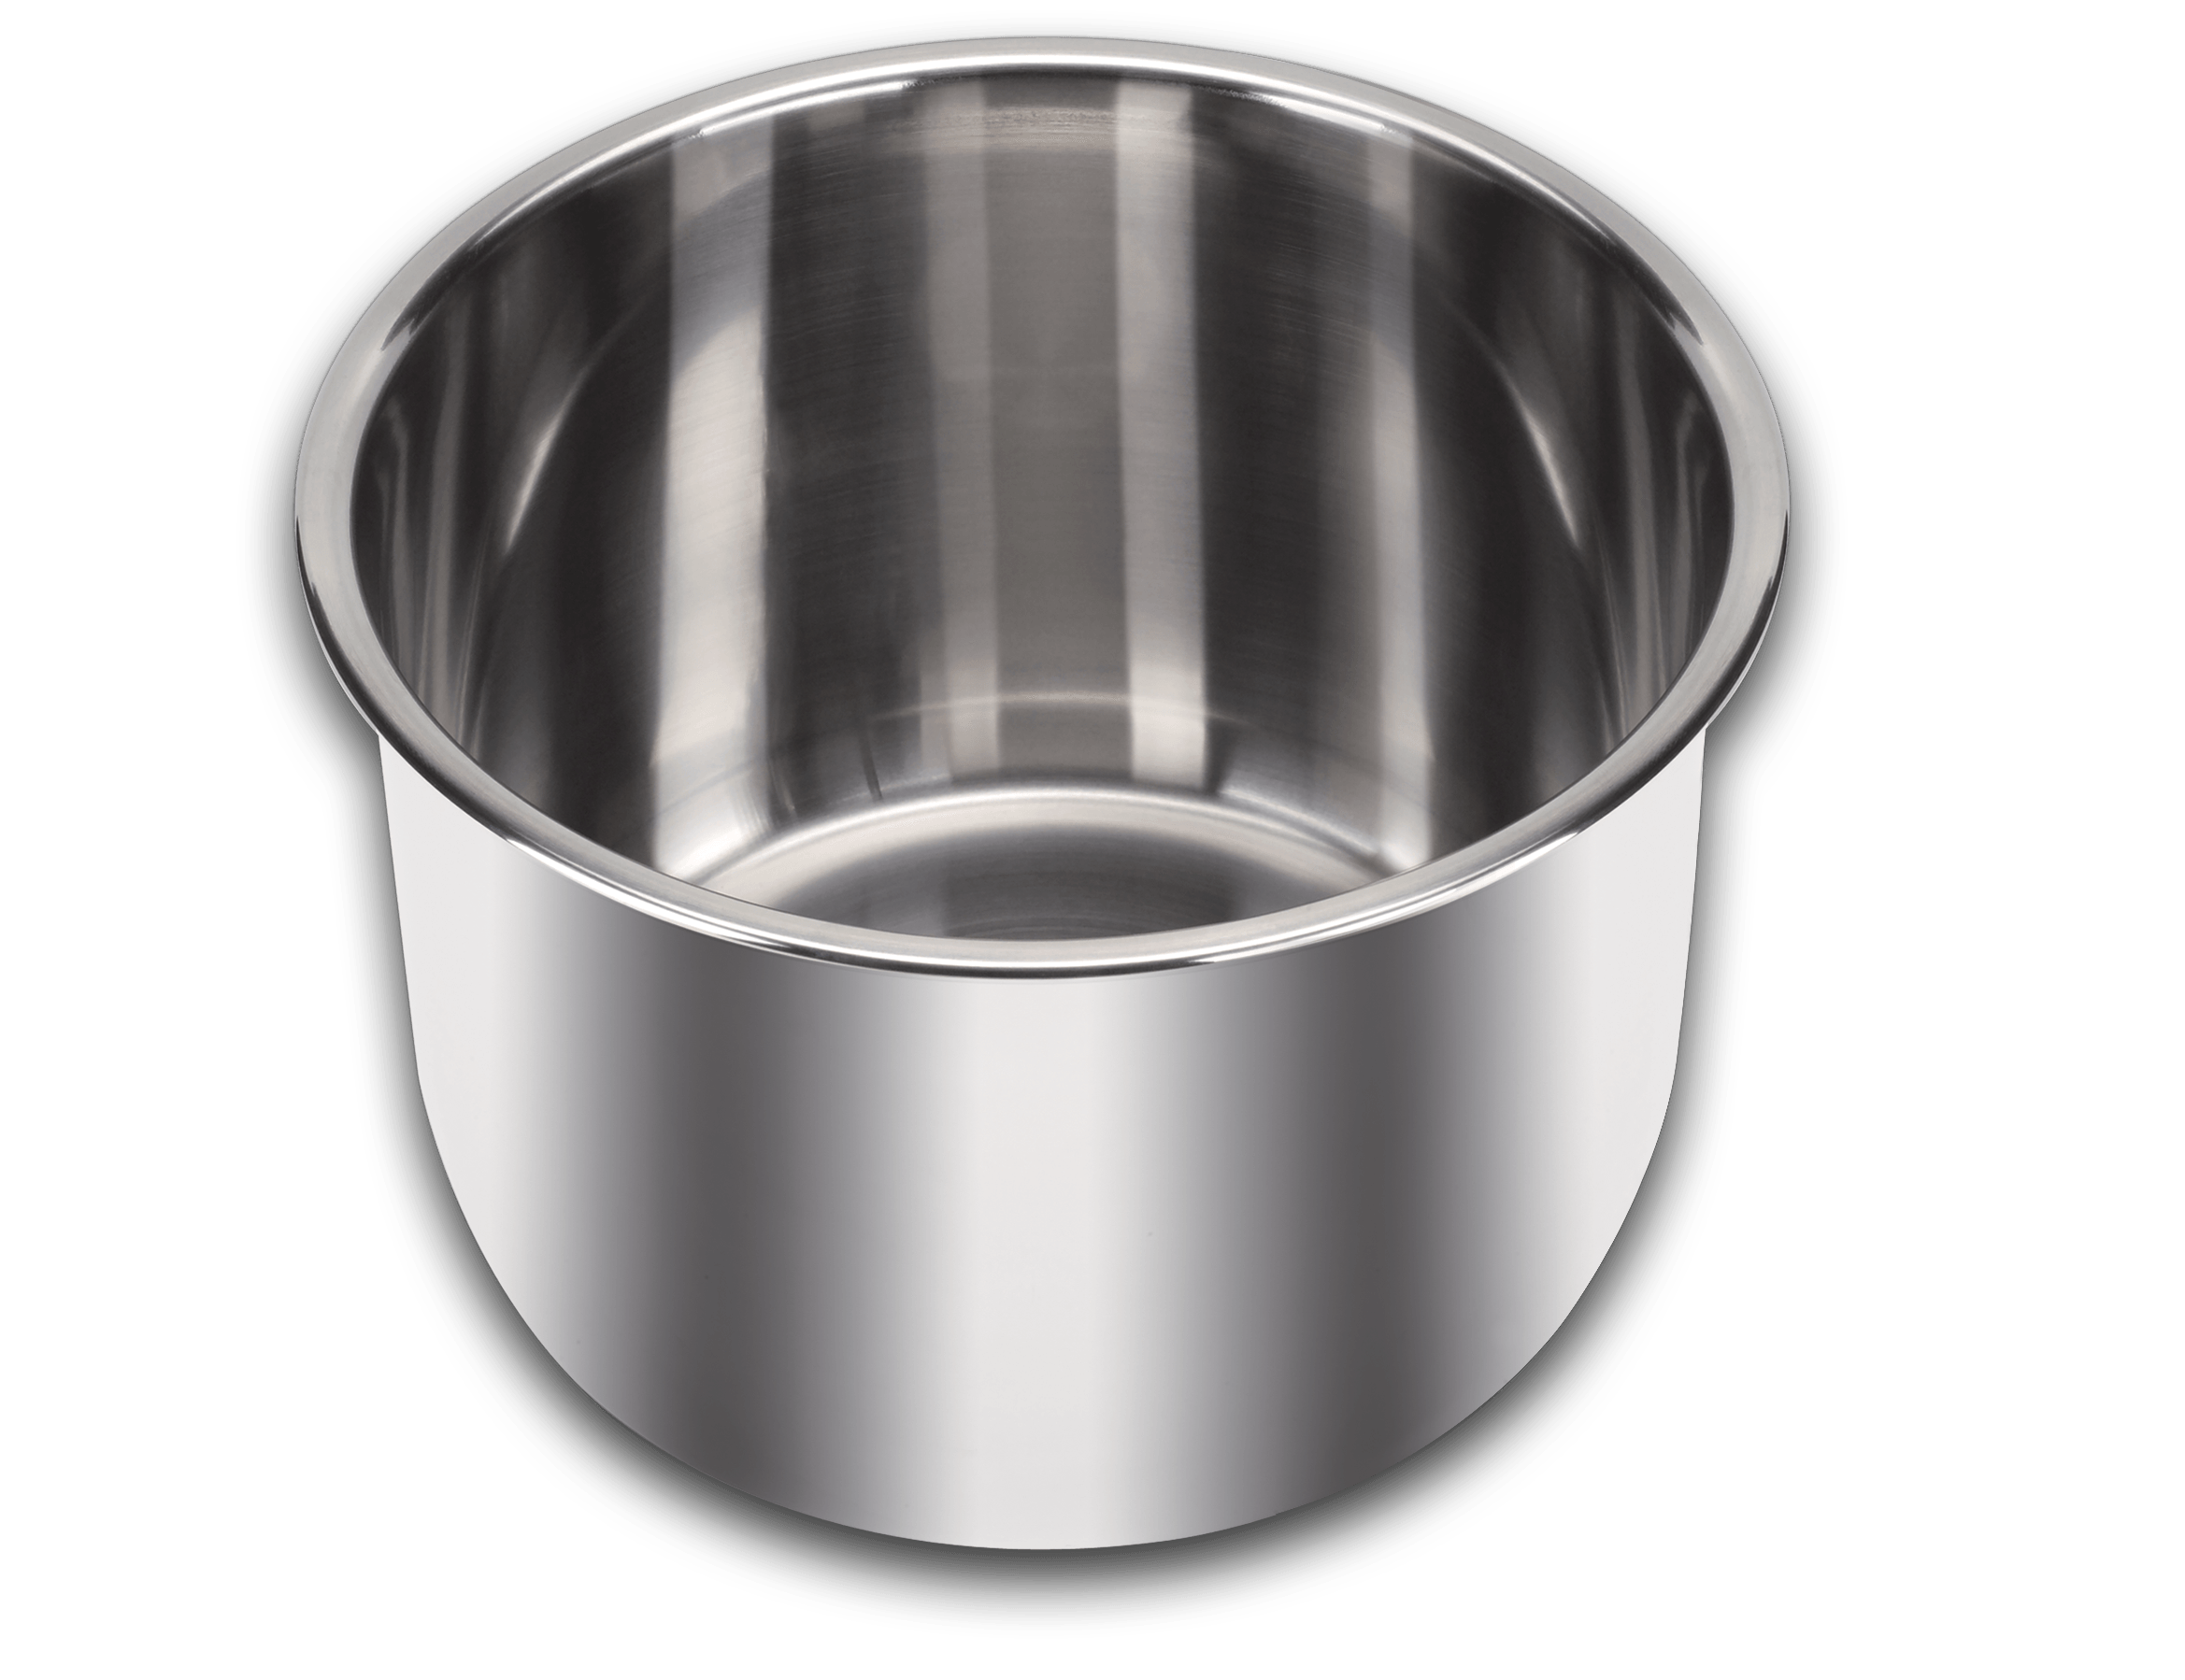 Silver Cooking Pot transparent PNG.